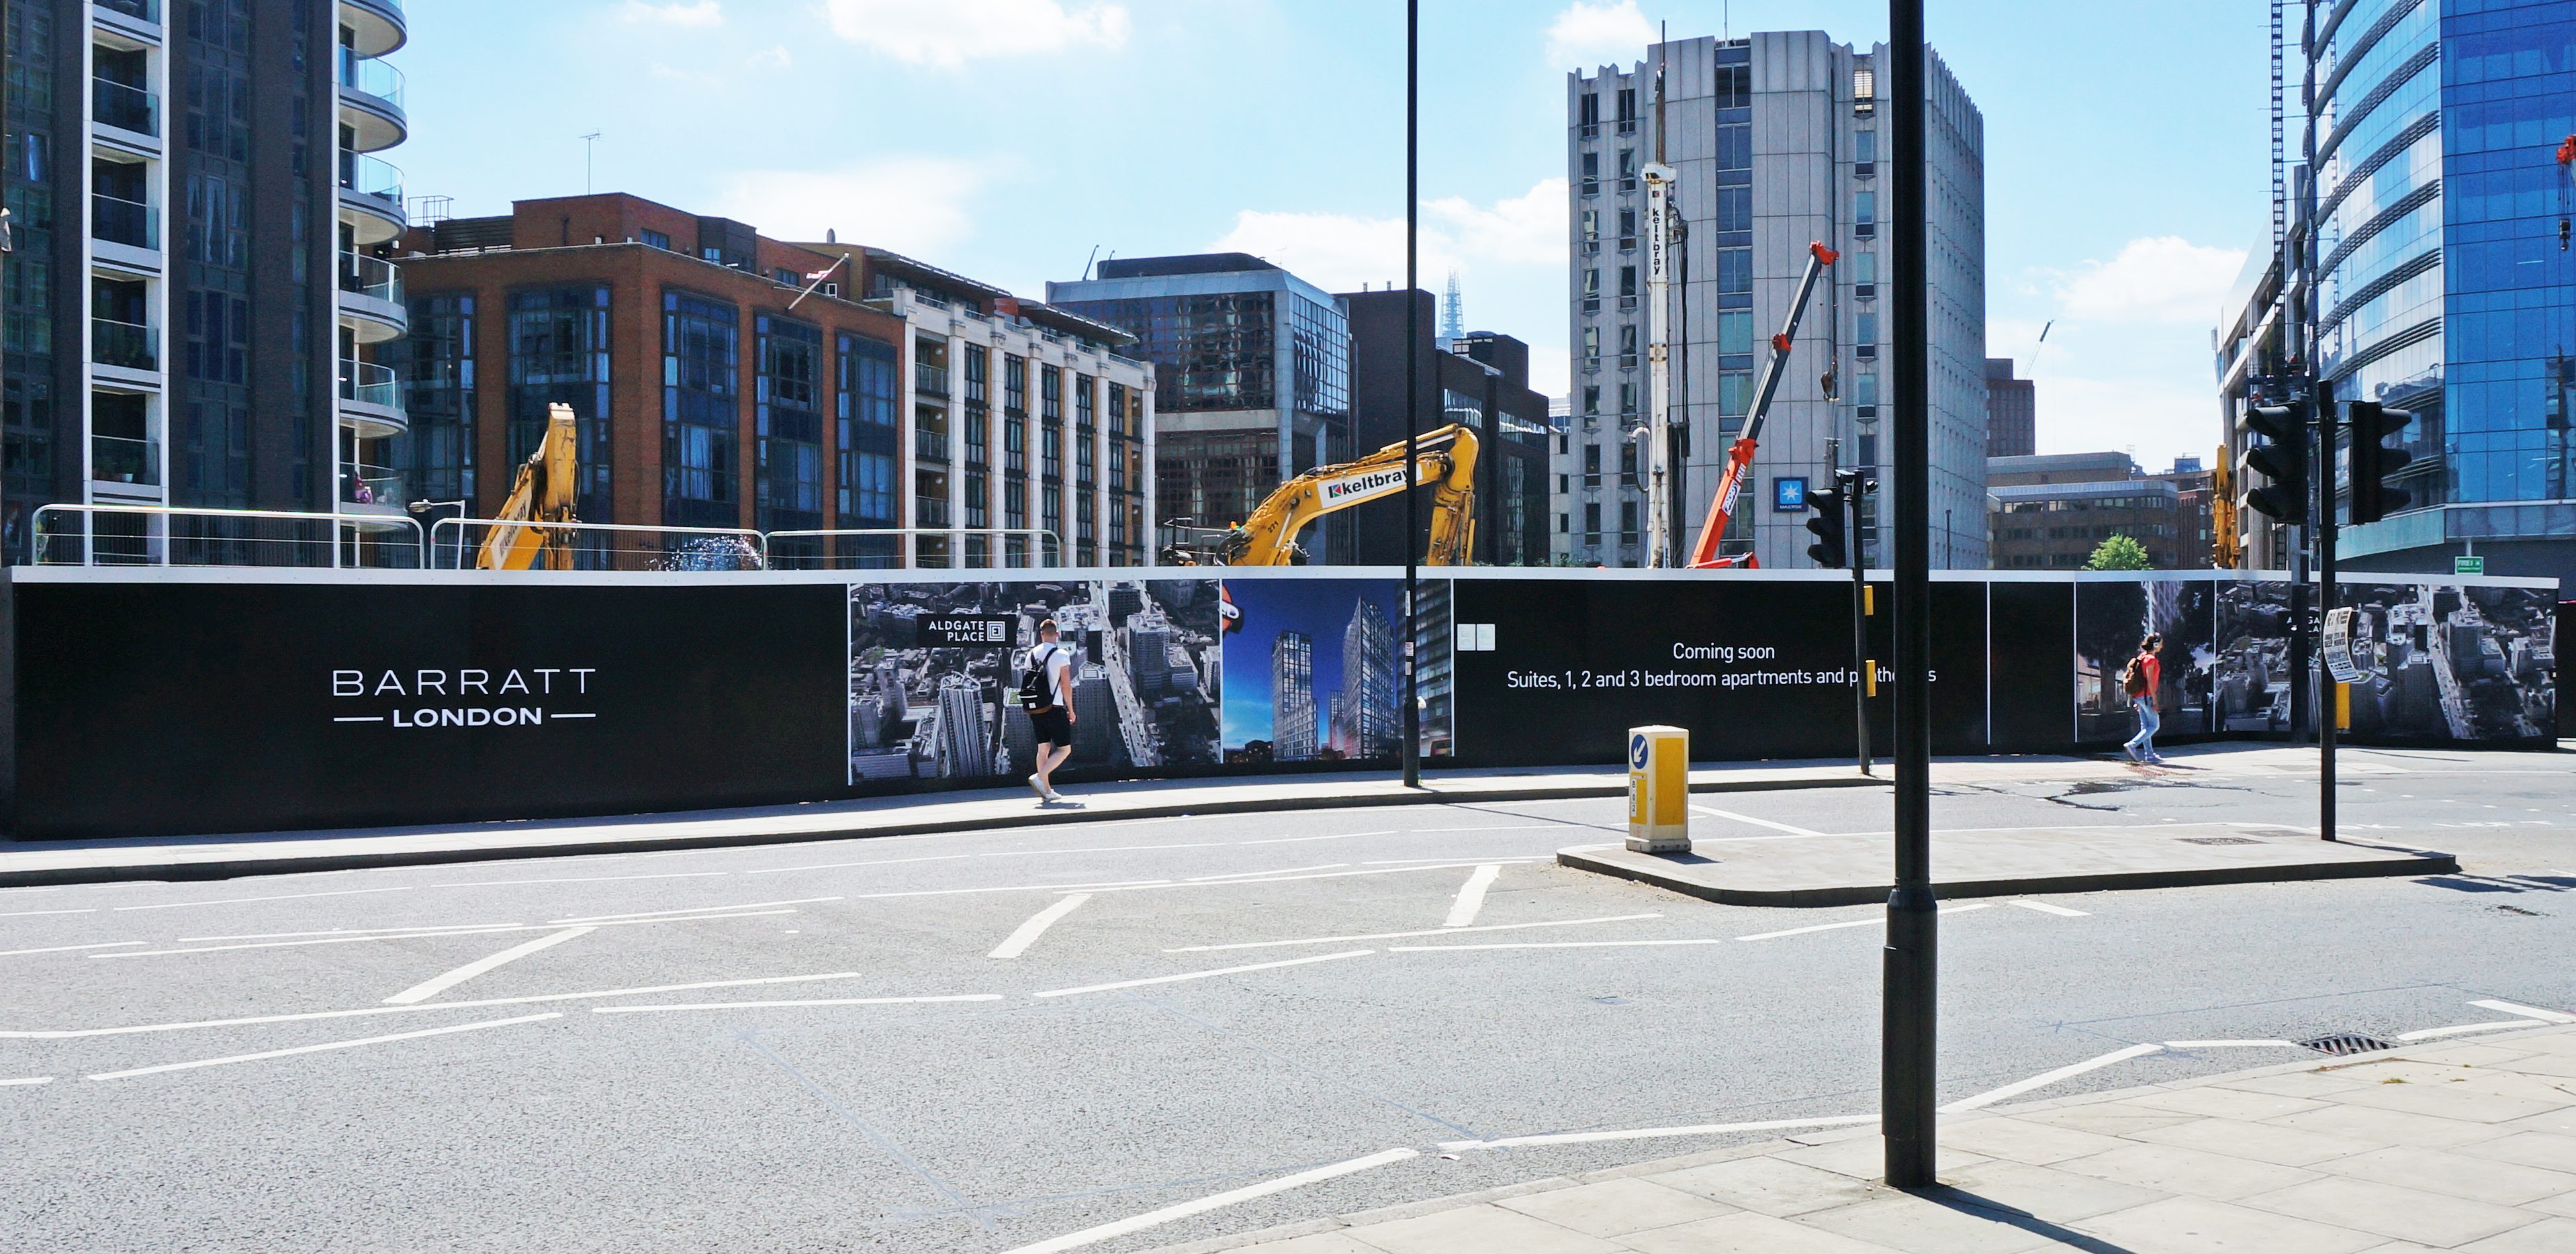 Barratt Homes Aldgate hoarding